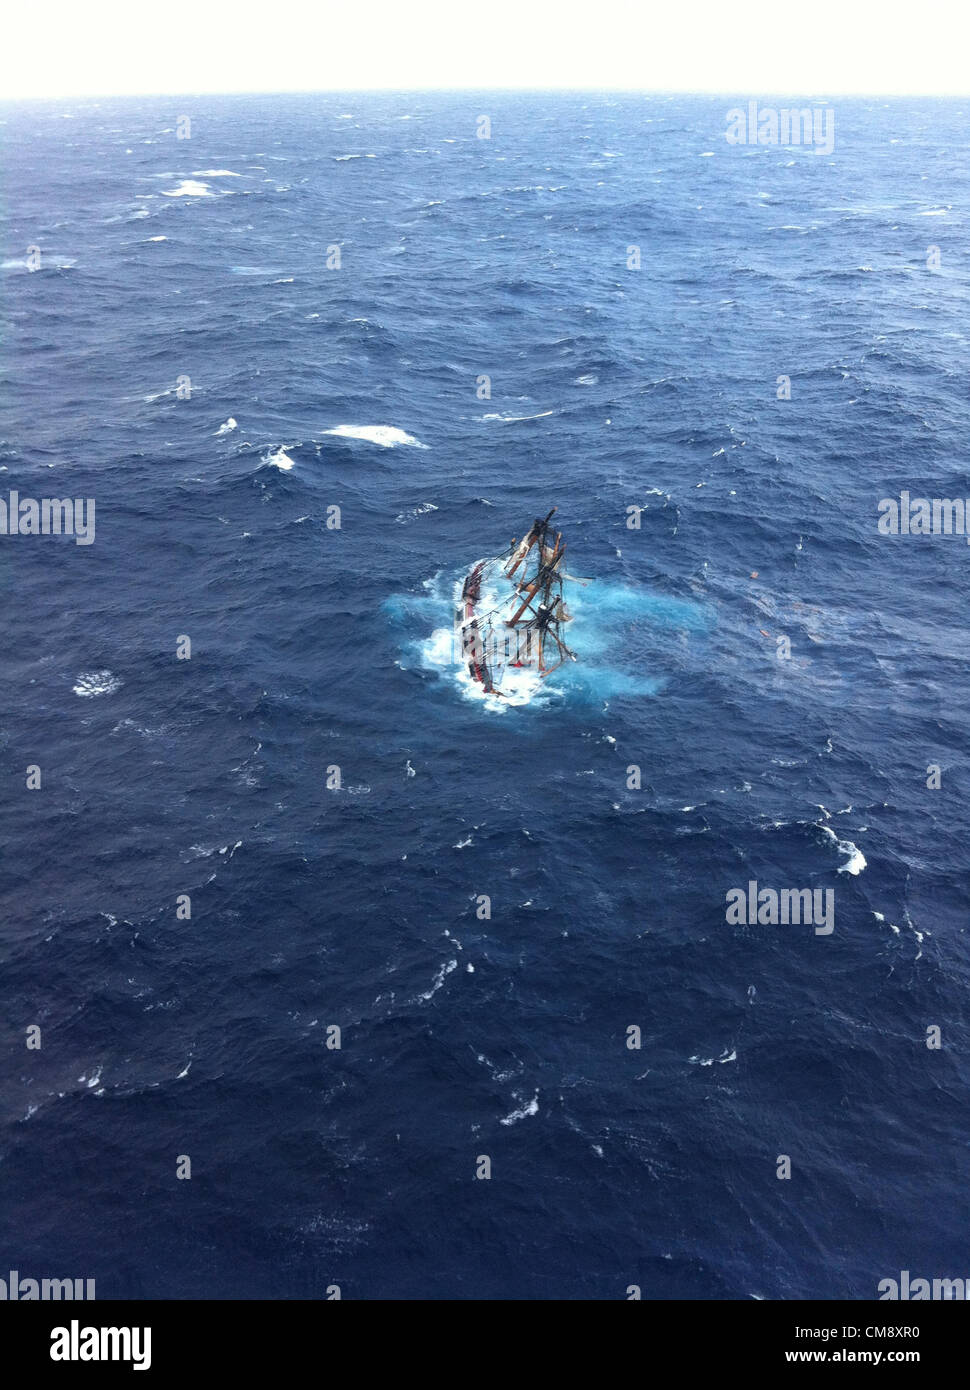 The HMS Bounty, a 180-foot sailboat, is shown submerged in the Atlantic Ocean during Hurricane Sandy approximately - Stock Image